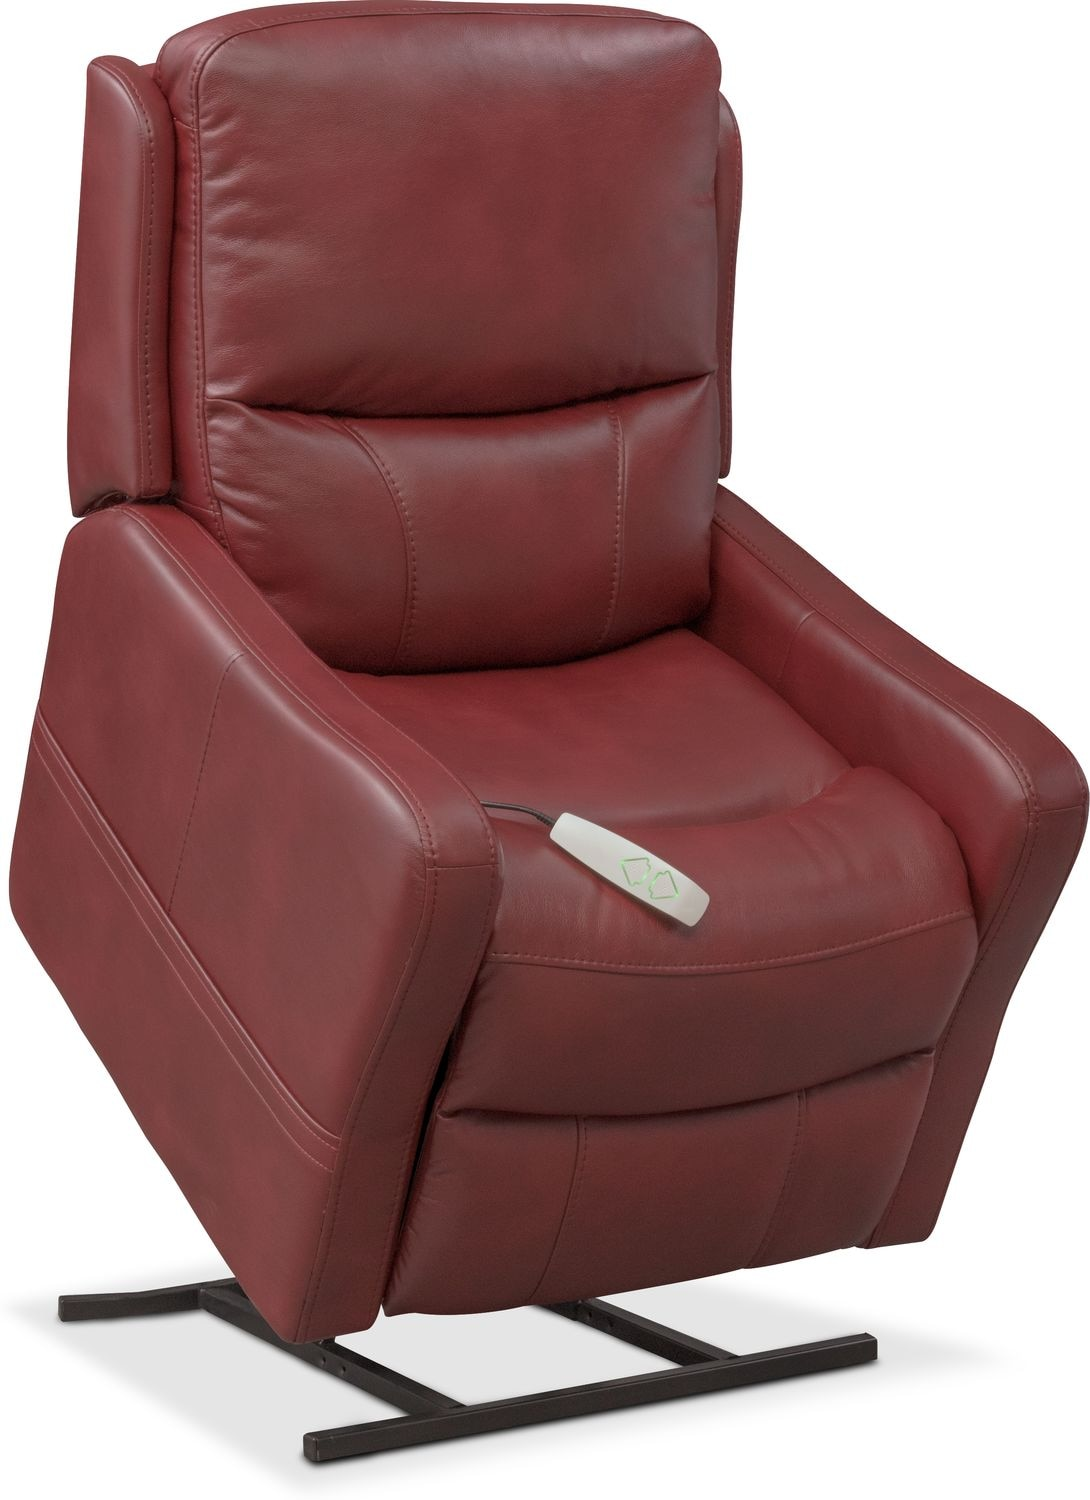 cabo power lift recliner red - Serta Recliners